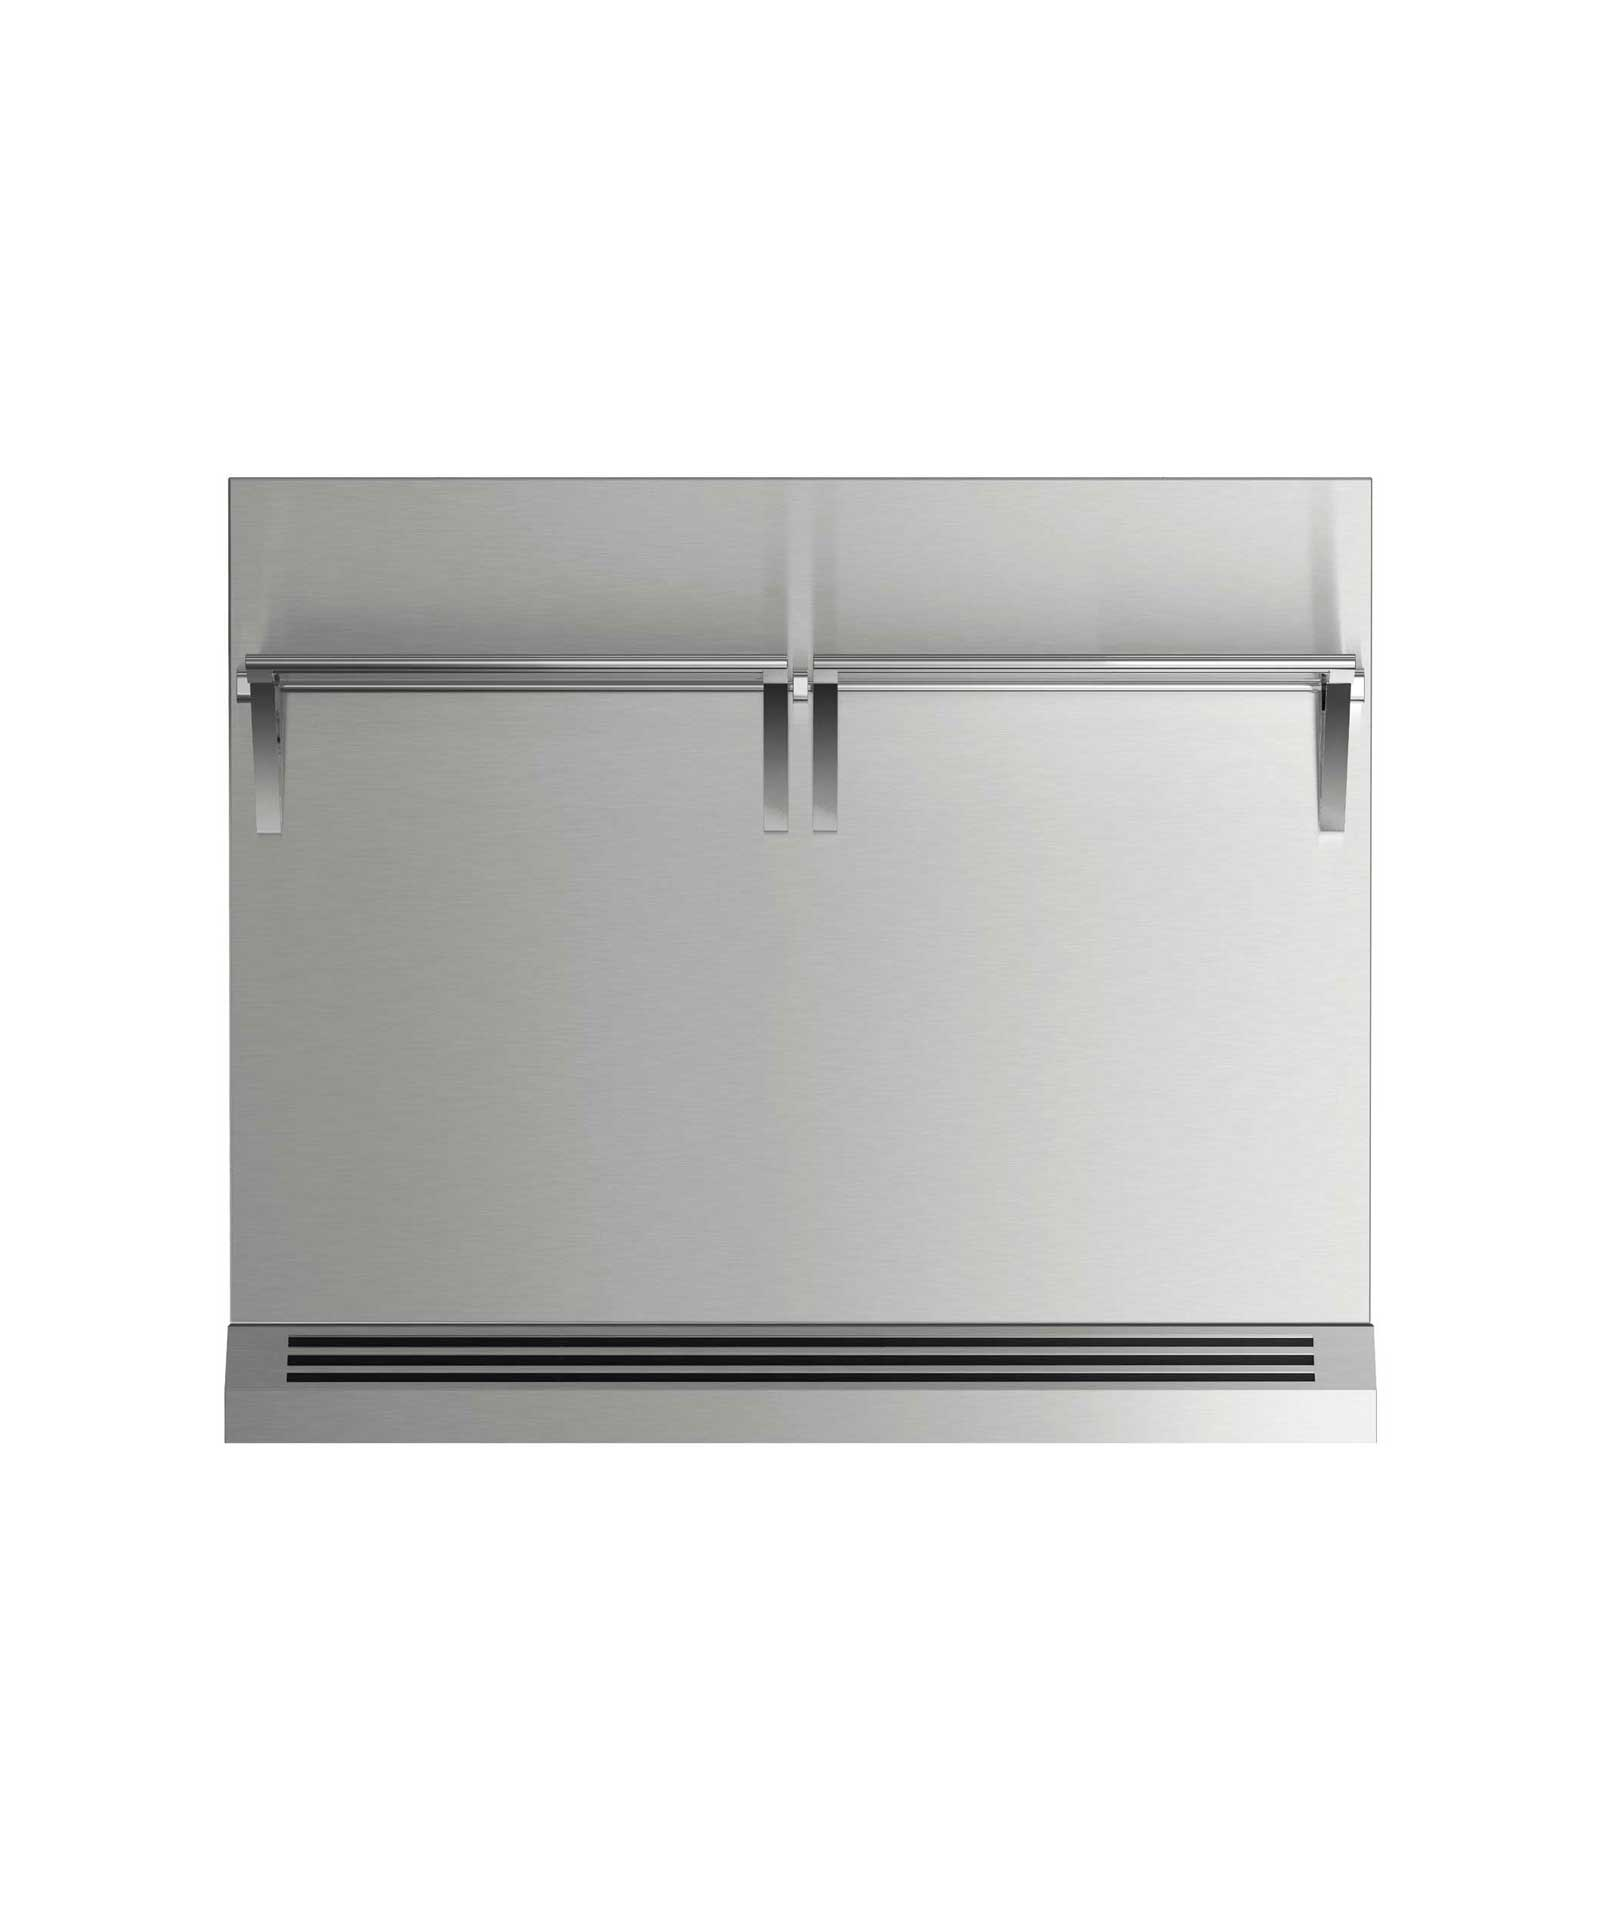 """Fisher and Paykel 36"""" Range High Backguard for combustible situation"""